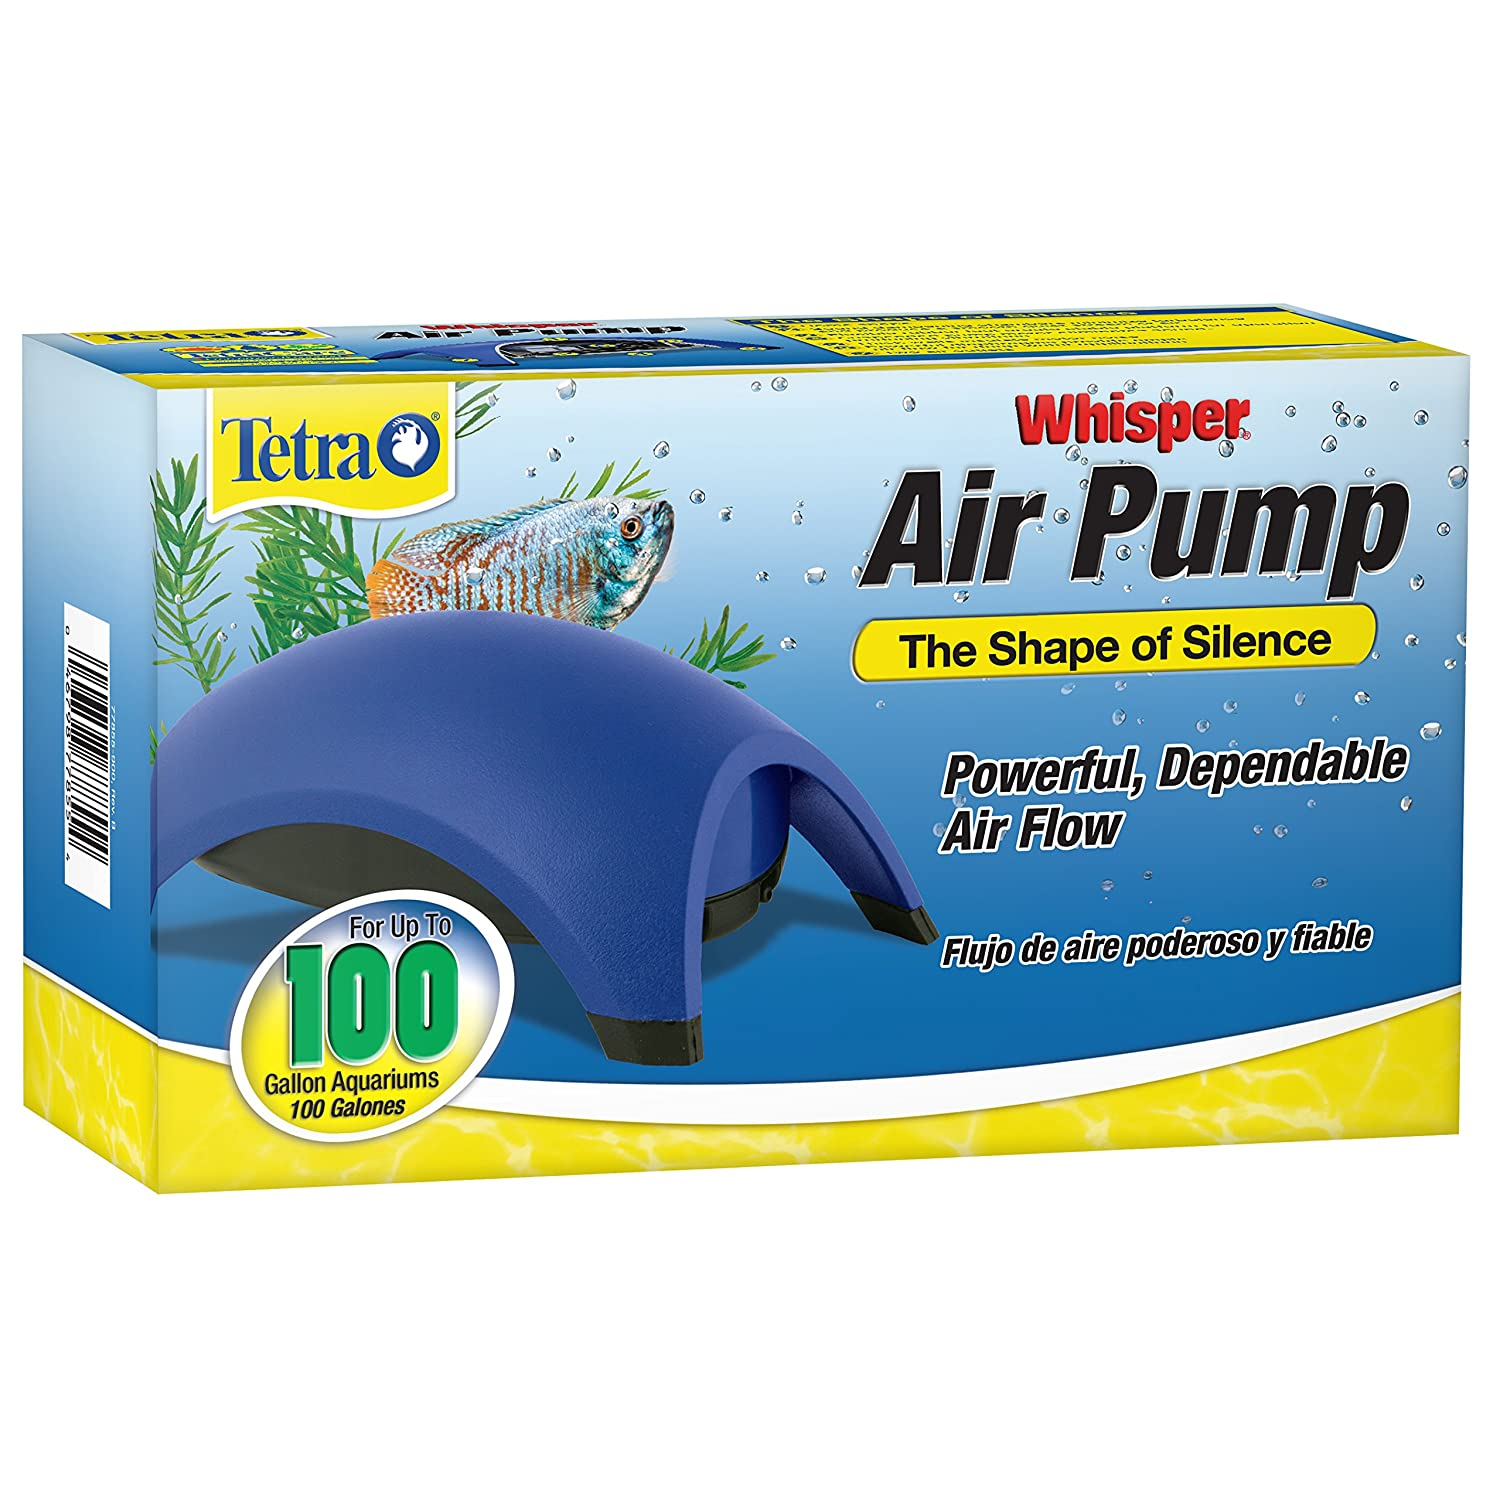 919Nc0VheXL._SL1500_ amazon com tetra 77855 whisper air pump, 100 gallon aquarium  at cita.asia